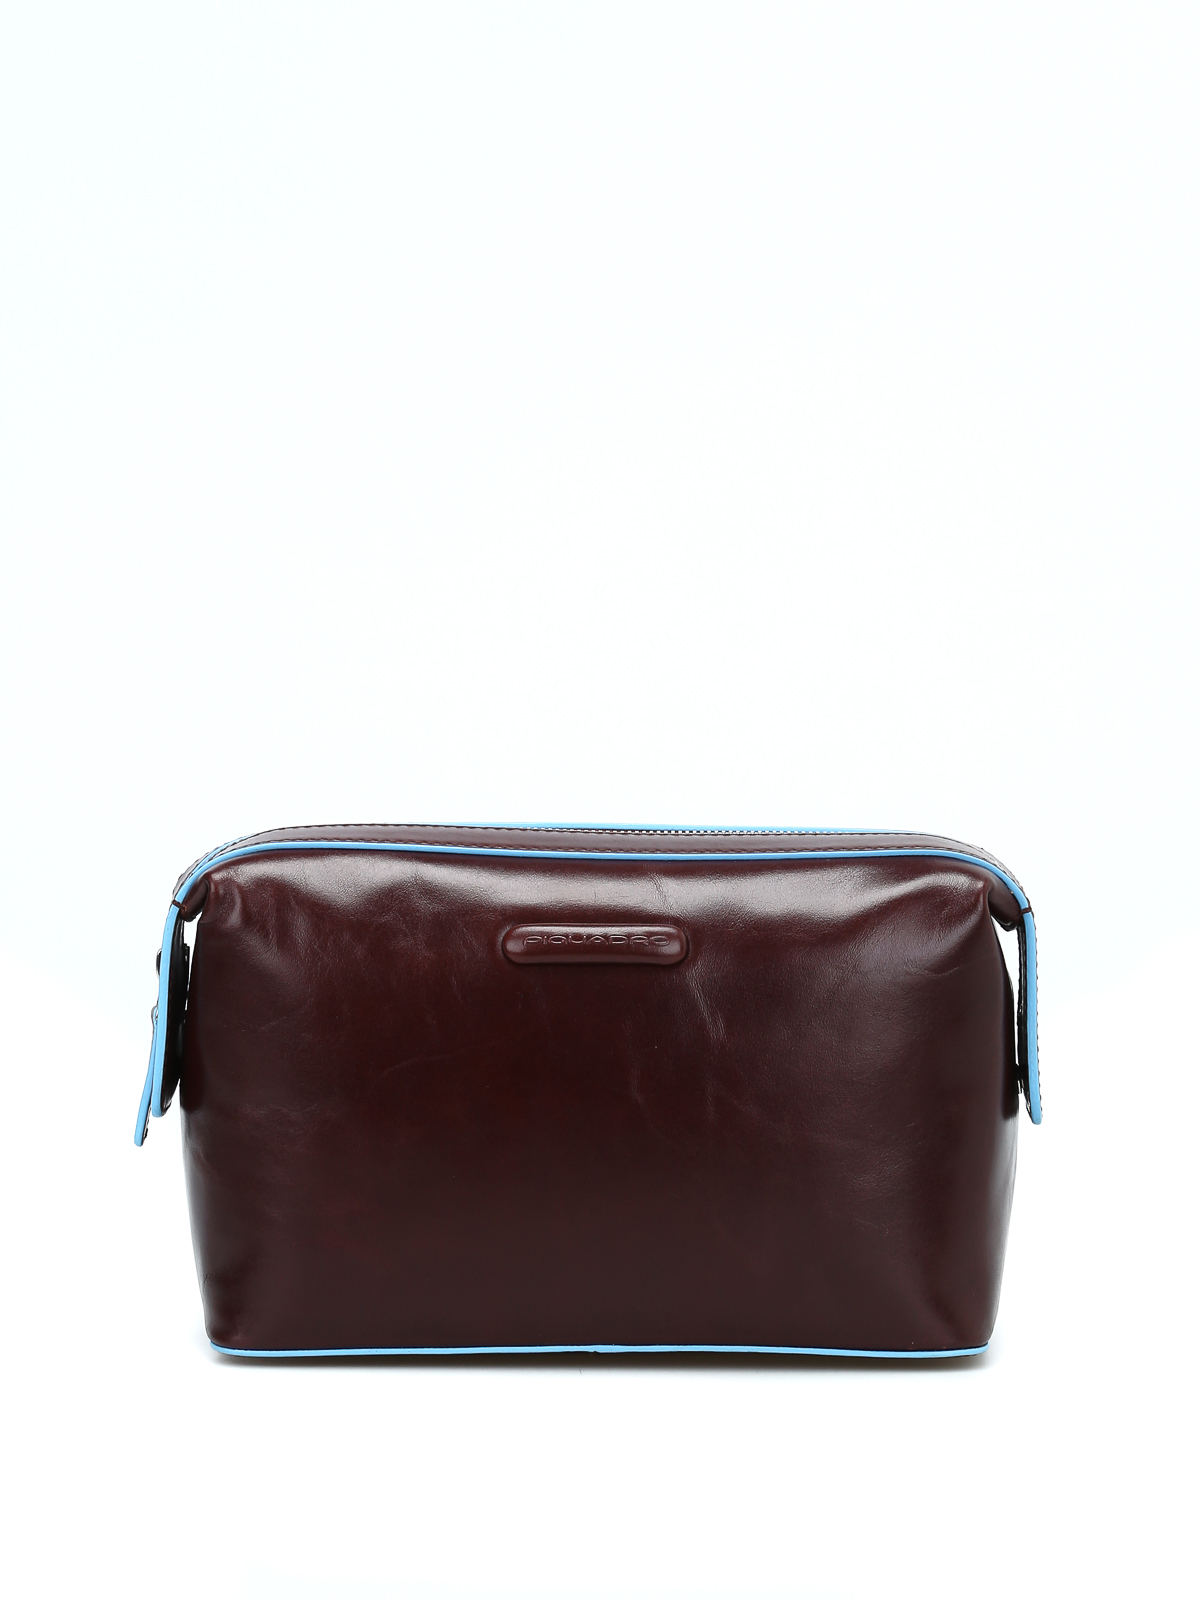 Piquadro Brushed Leather Classic Beauty Case In Brown